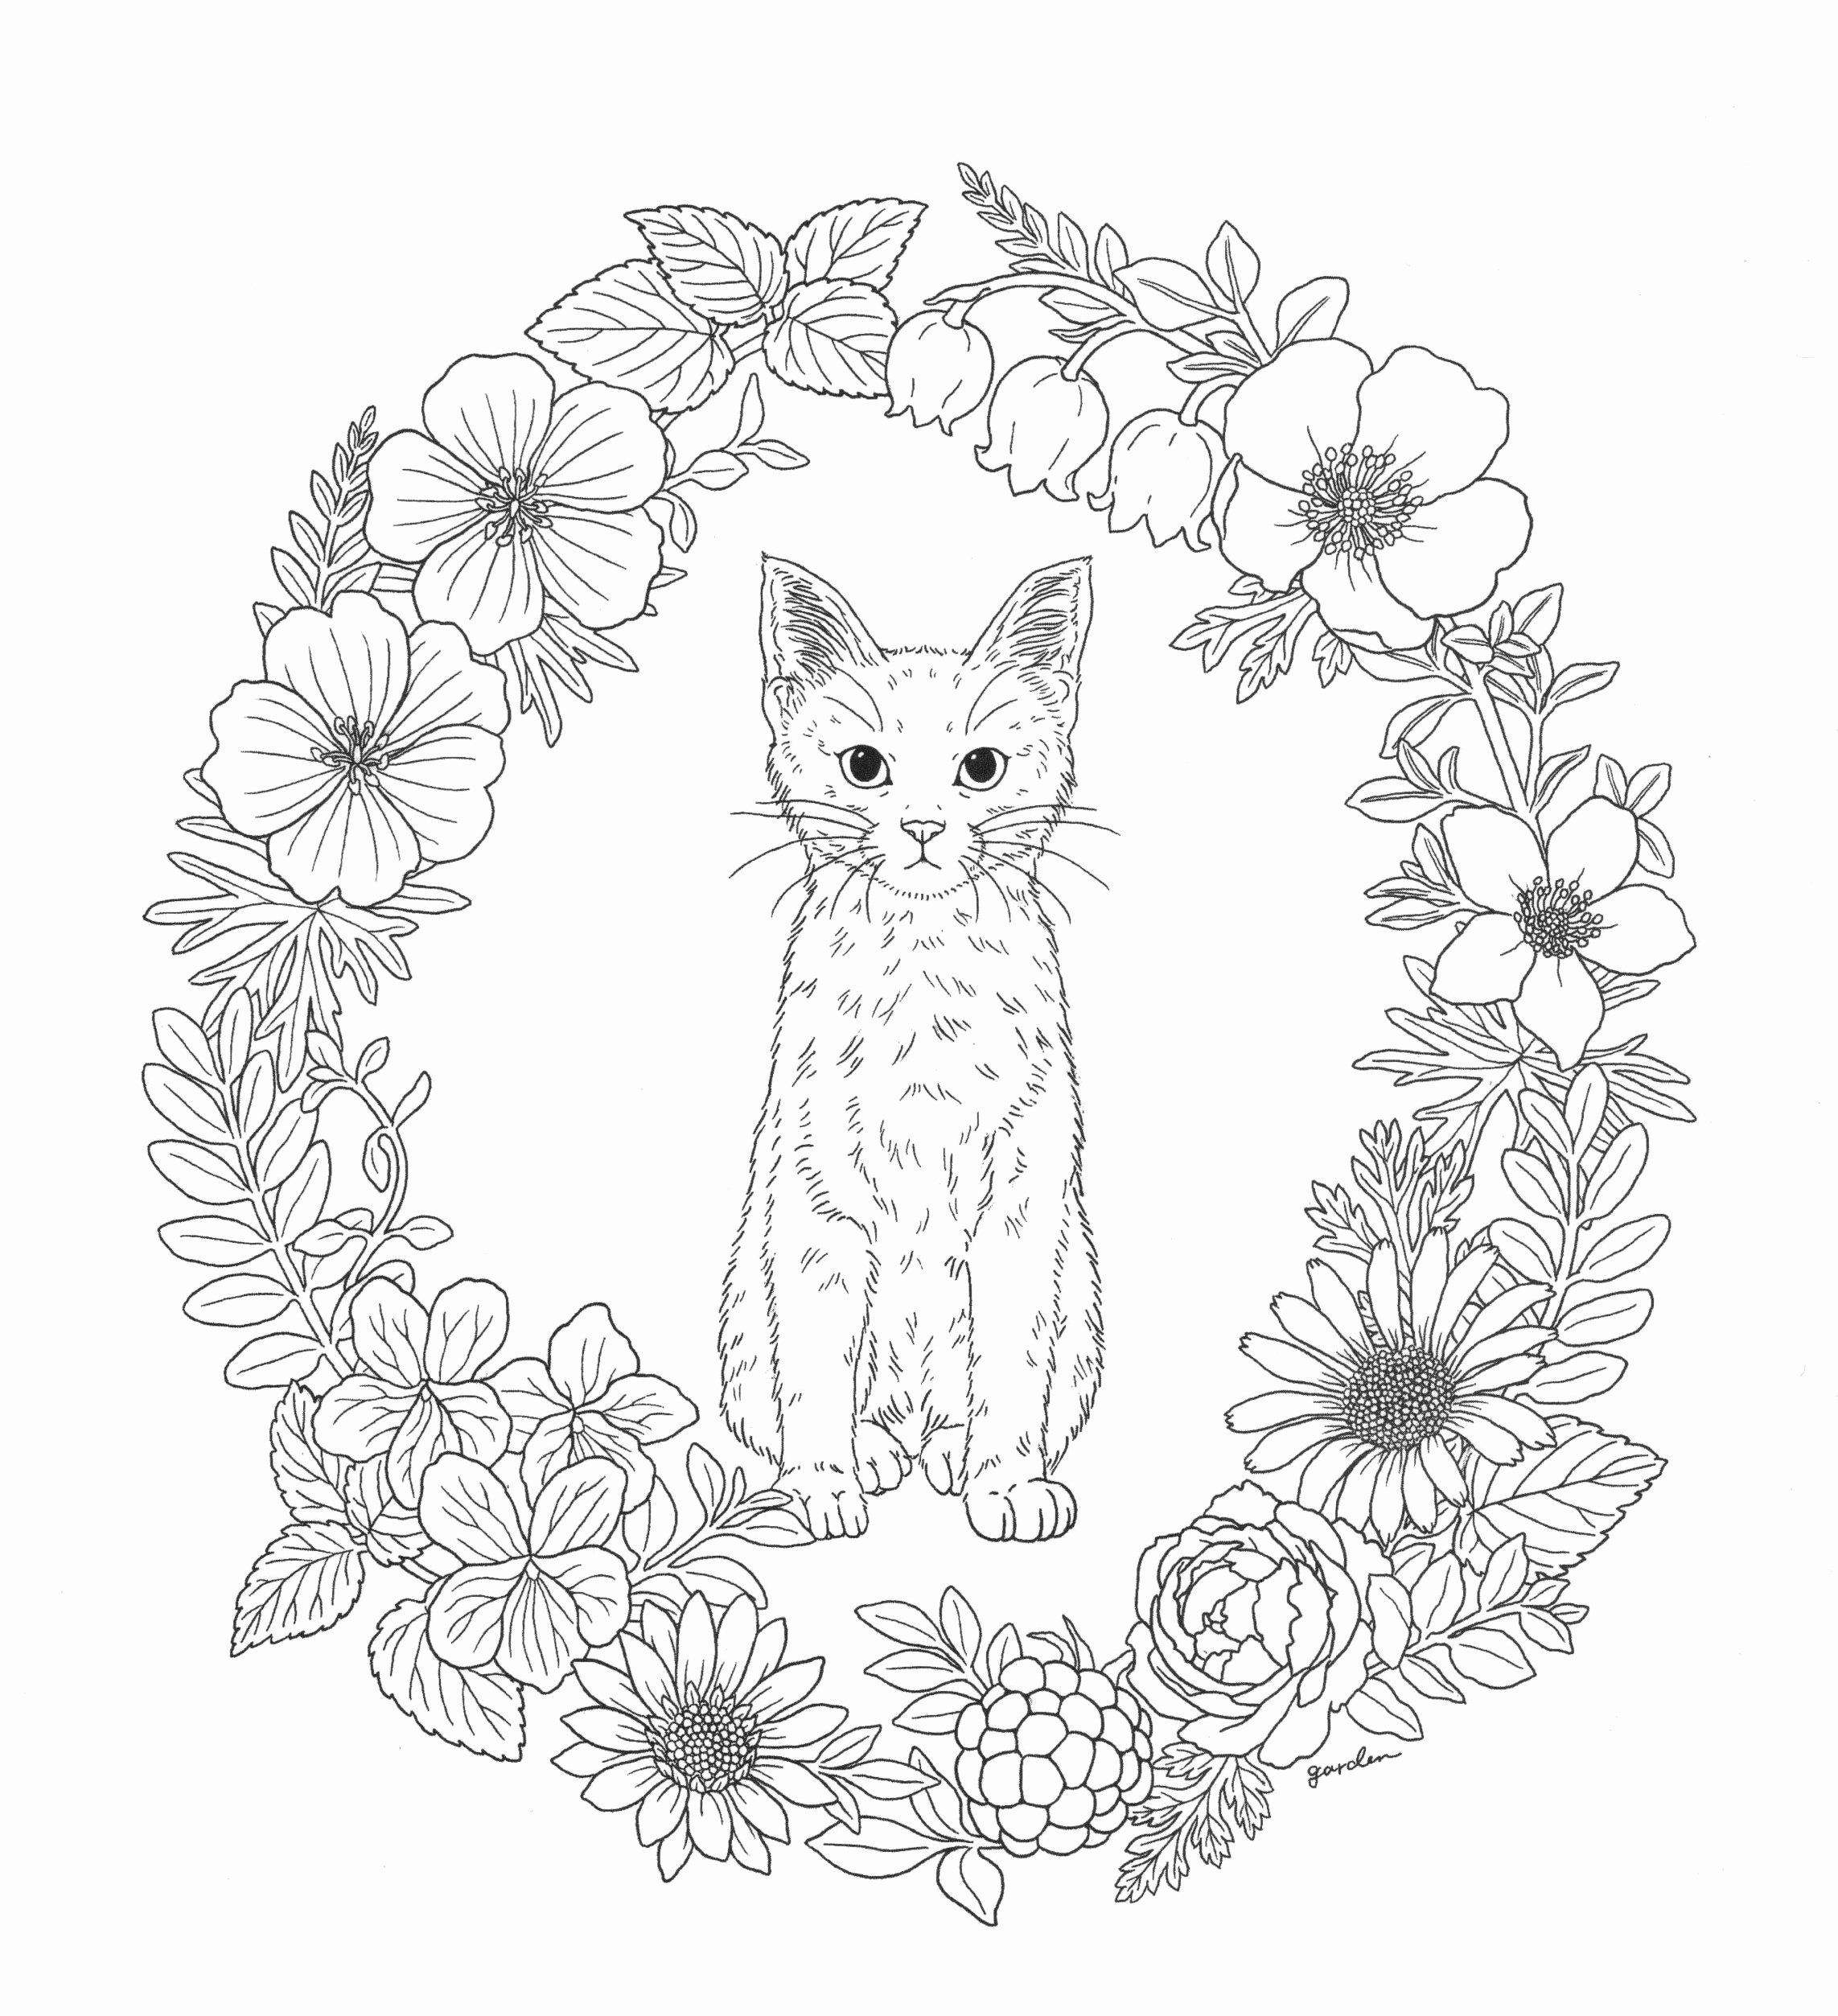 Pokemon Free Coloring Pages New Free Printable Butterfly Template Unicorn Coloring Pages Animal Coloring Pages Horse Coloring Pages